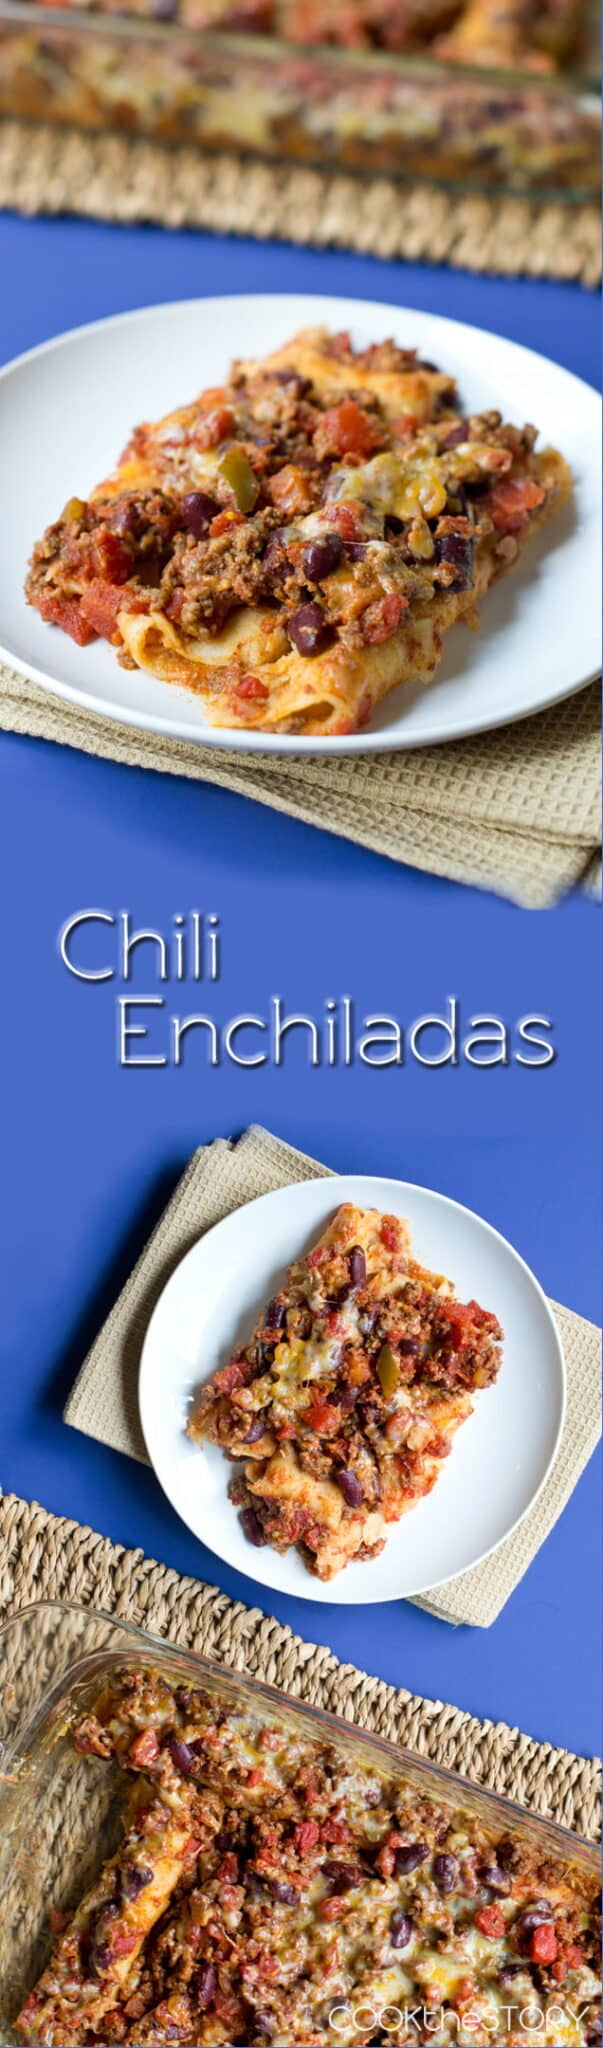 Chili Enchiladas collage text